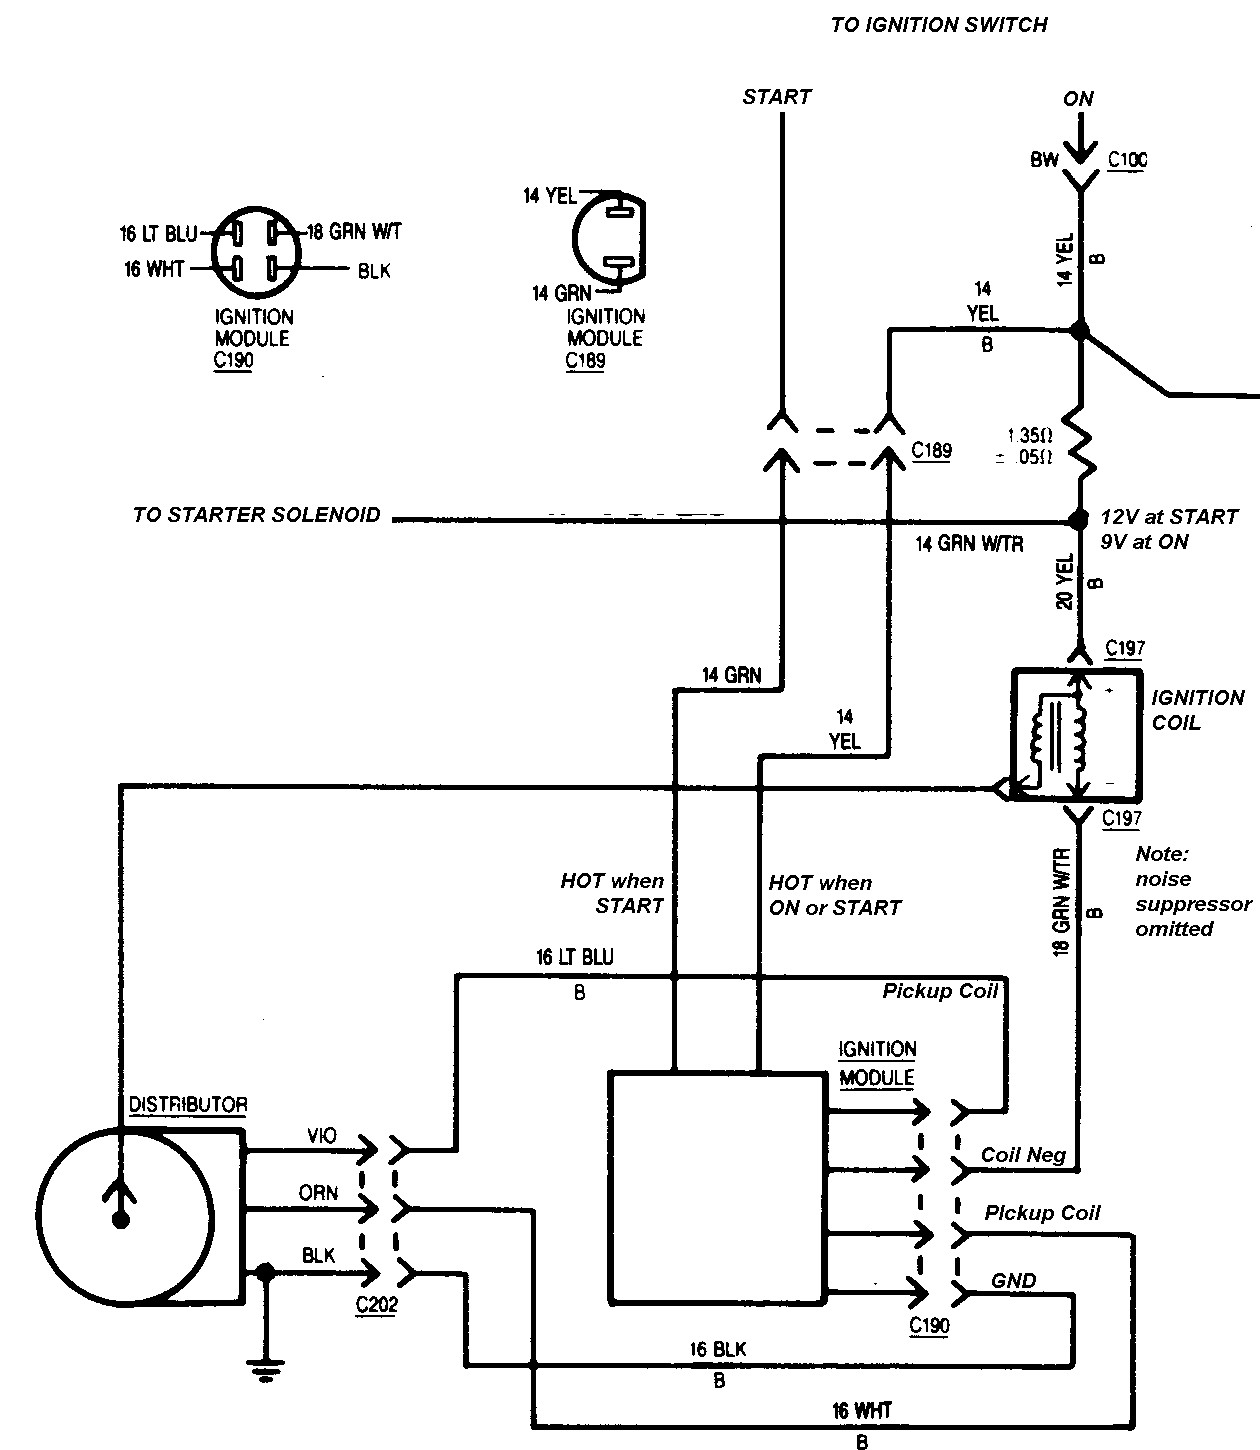 hight resolution of 57 tbi wiring harness wiring diagram blogs tbi distributor wiring diagram 5 7 tbi wiring harness